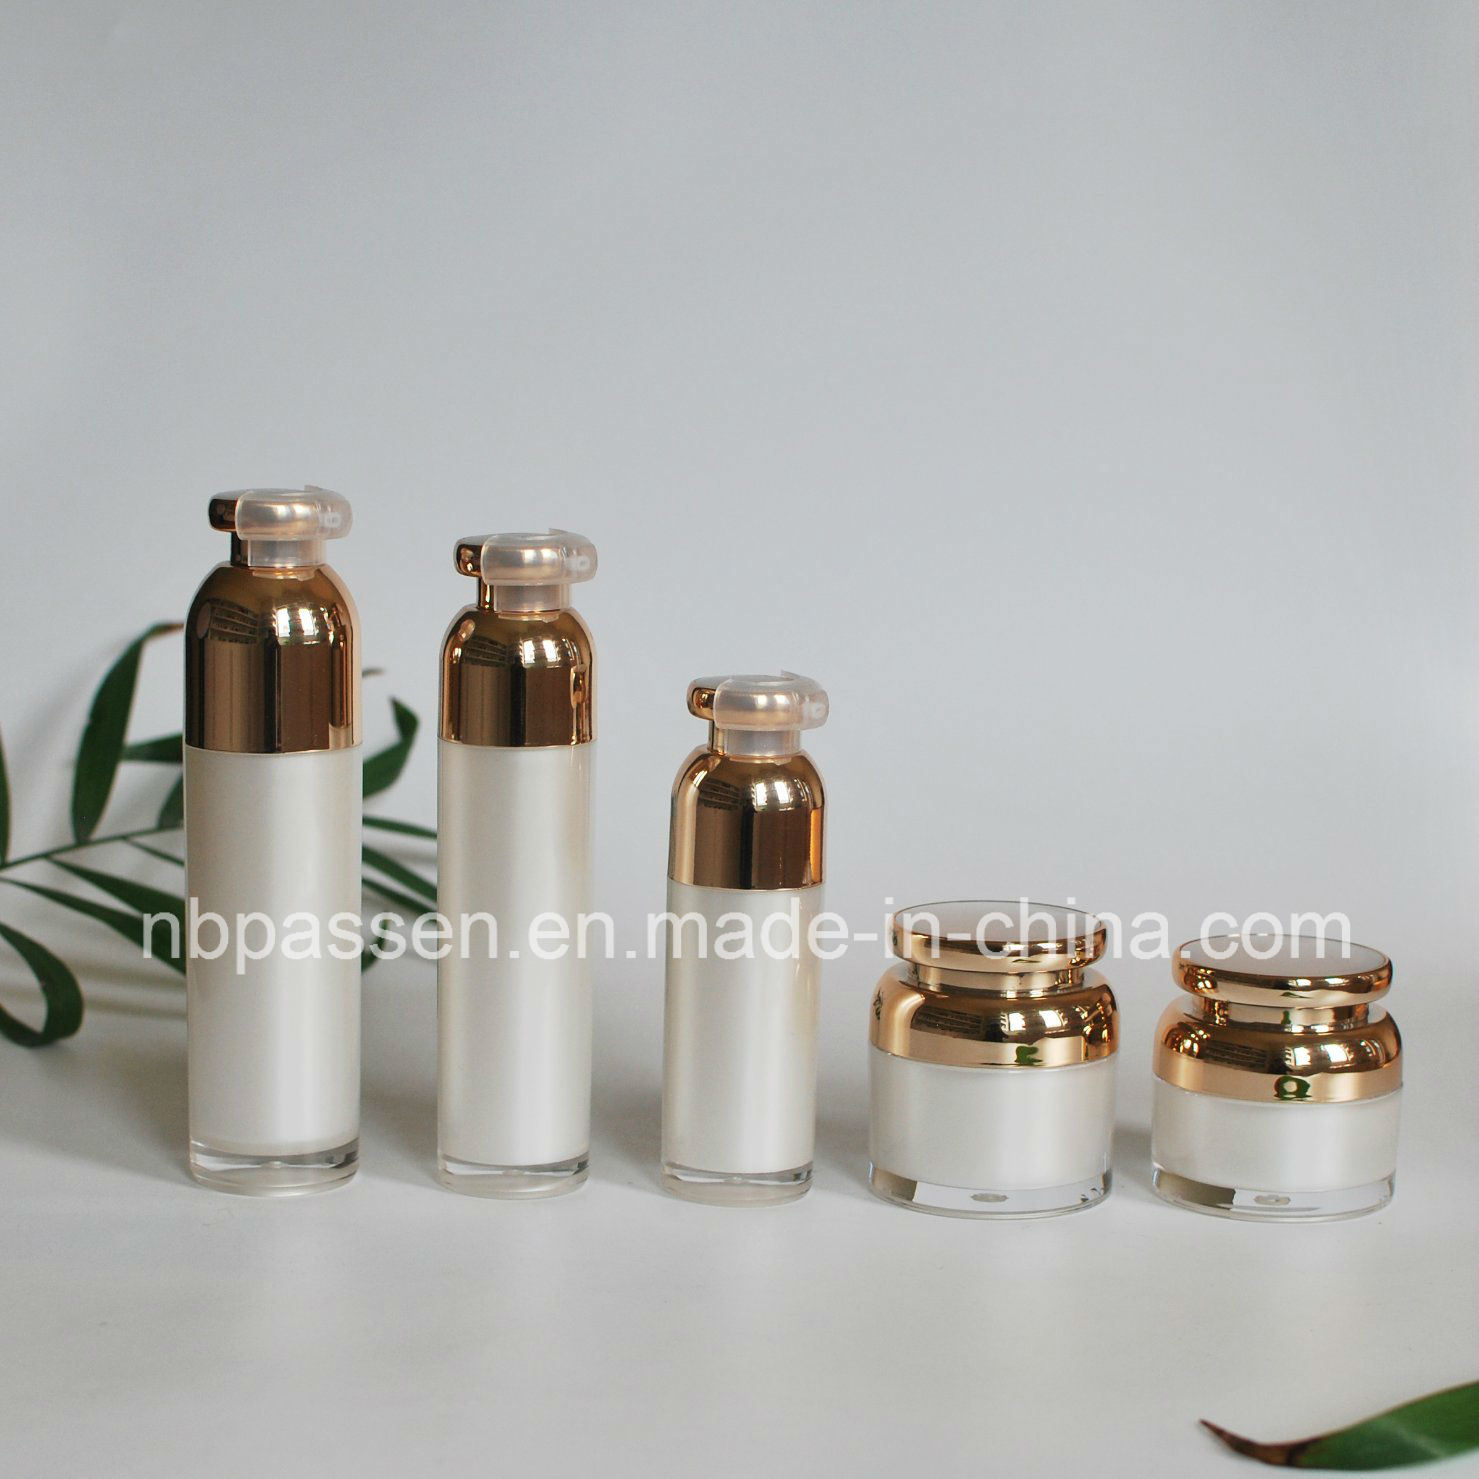 Pearl White Acrylic Cosmetic Bottle with Airless Pump (PPC-NEW-097)